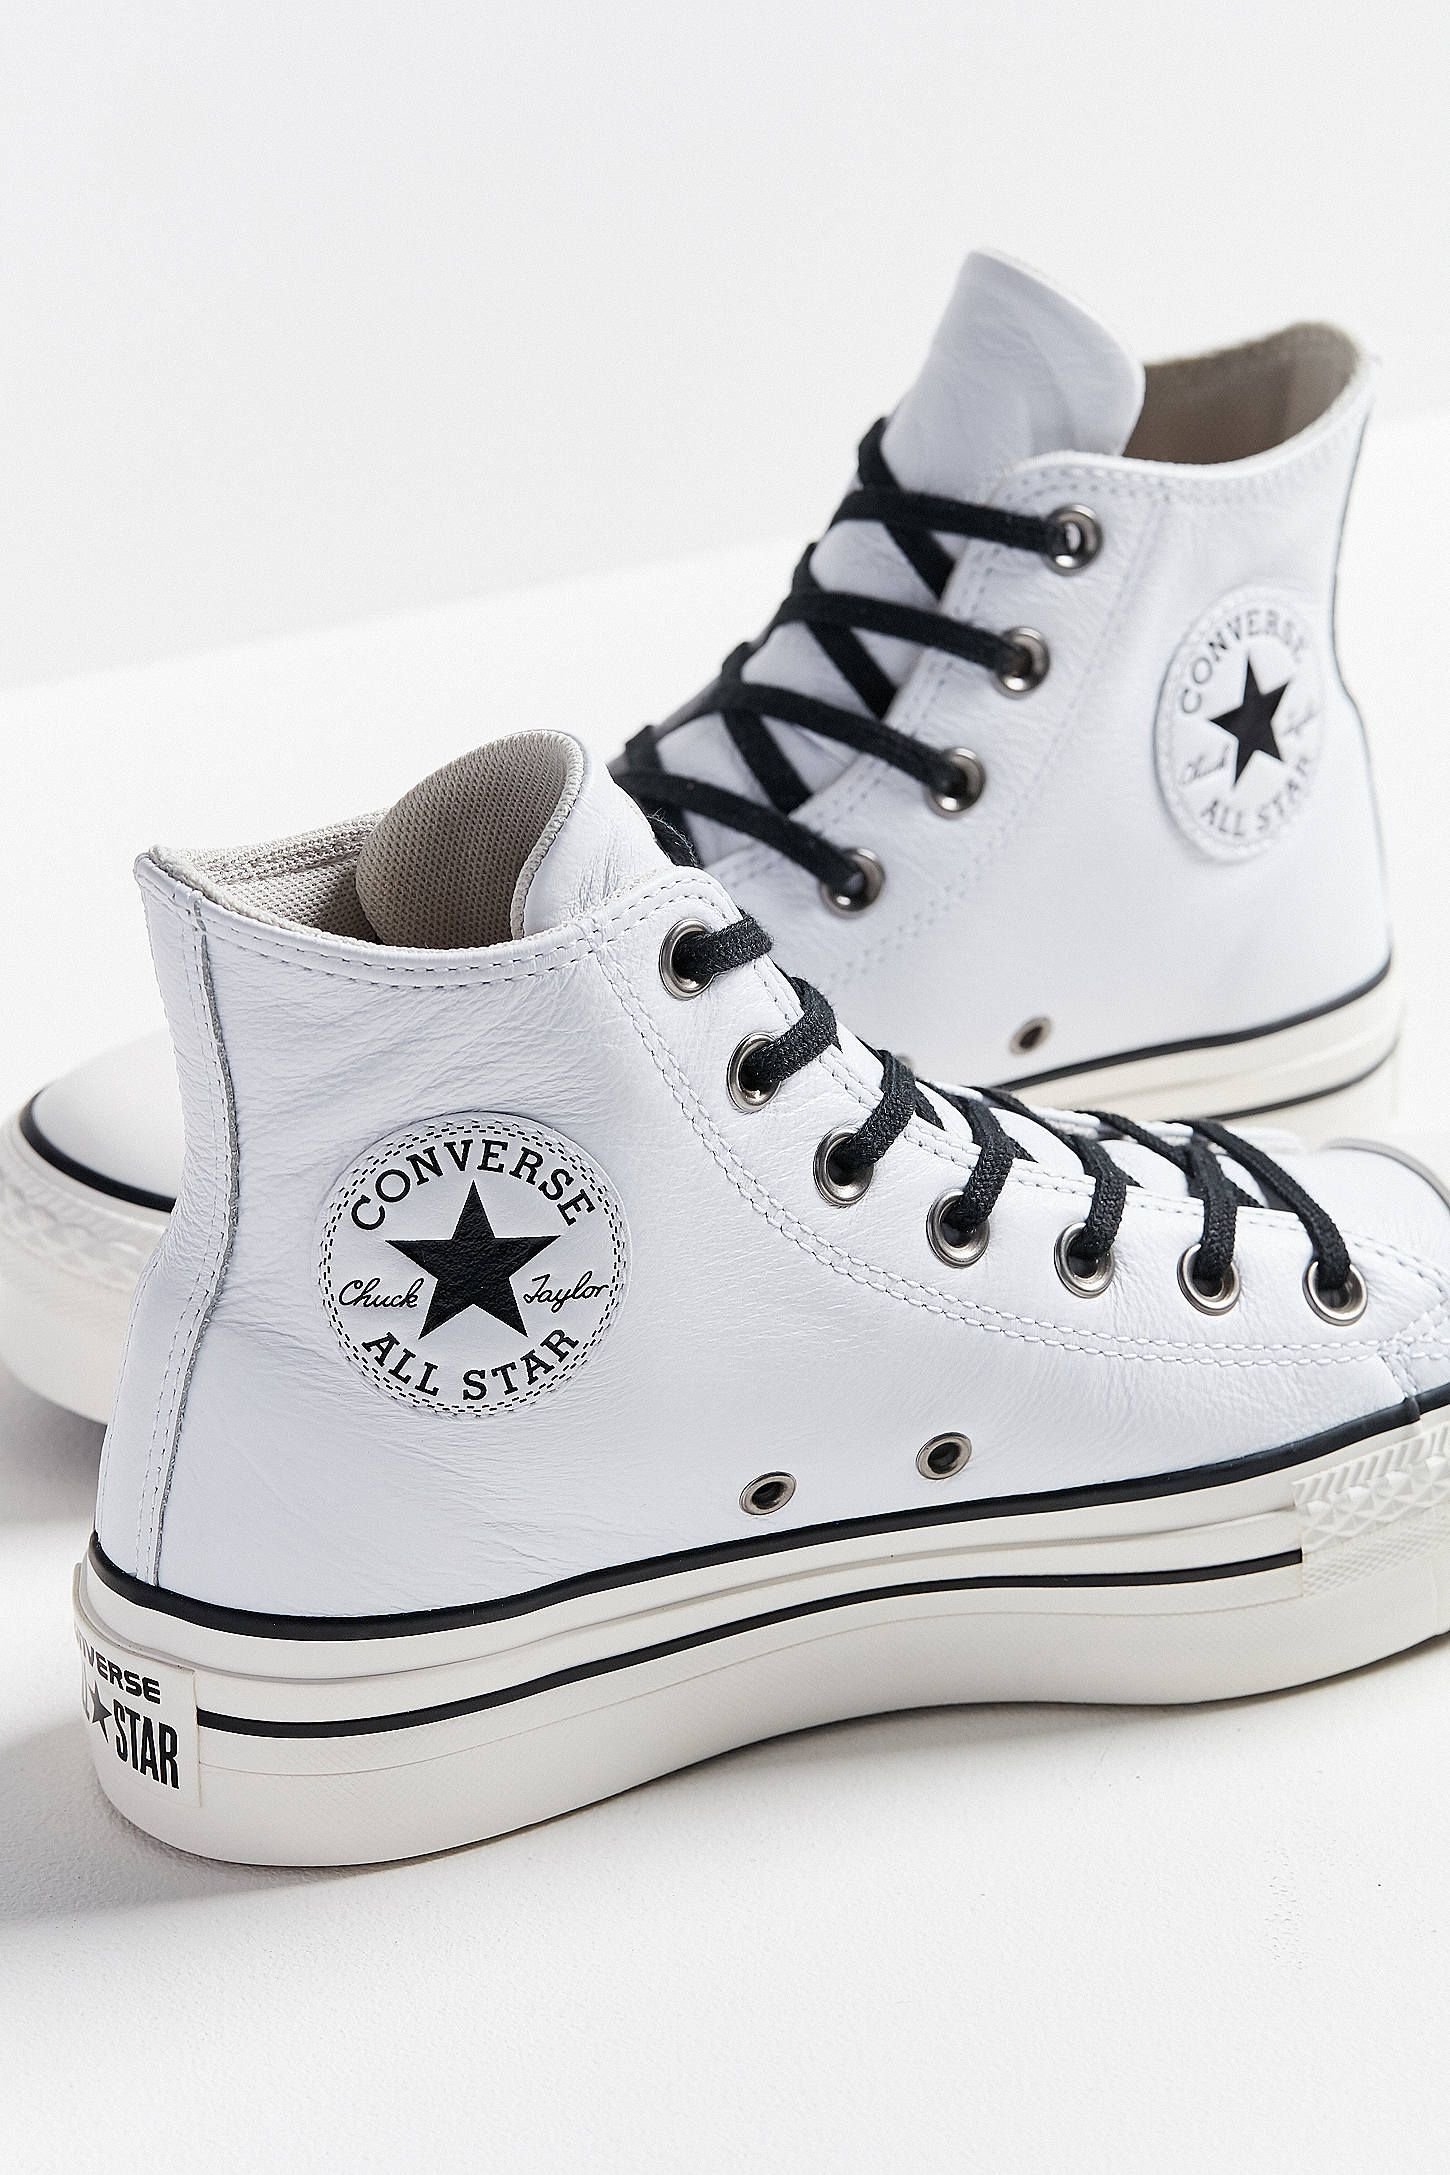 factory price 7fbdf 599a8 Slide View  5  Converse Chuck Taylor All Star Platform High Top Sneaker